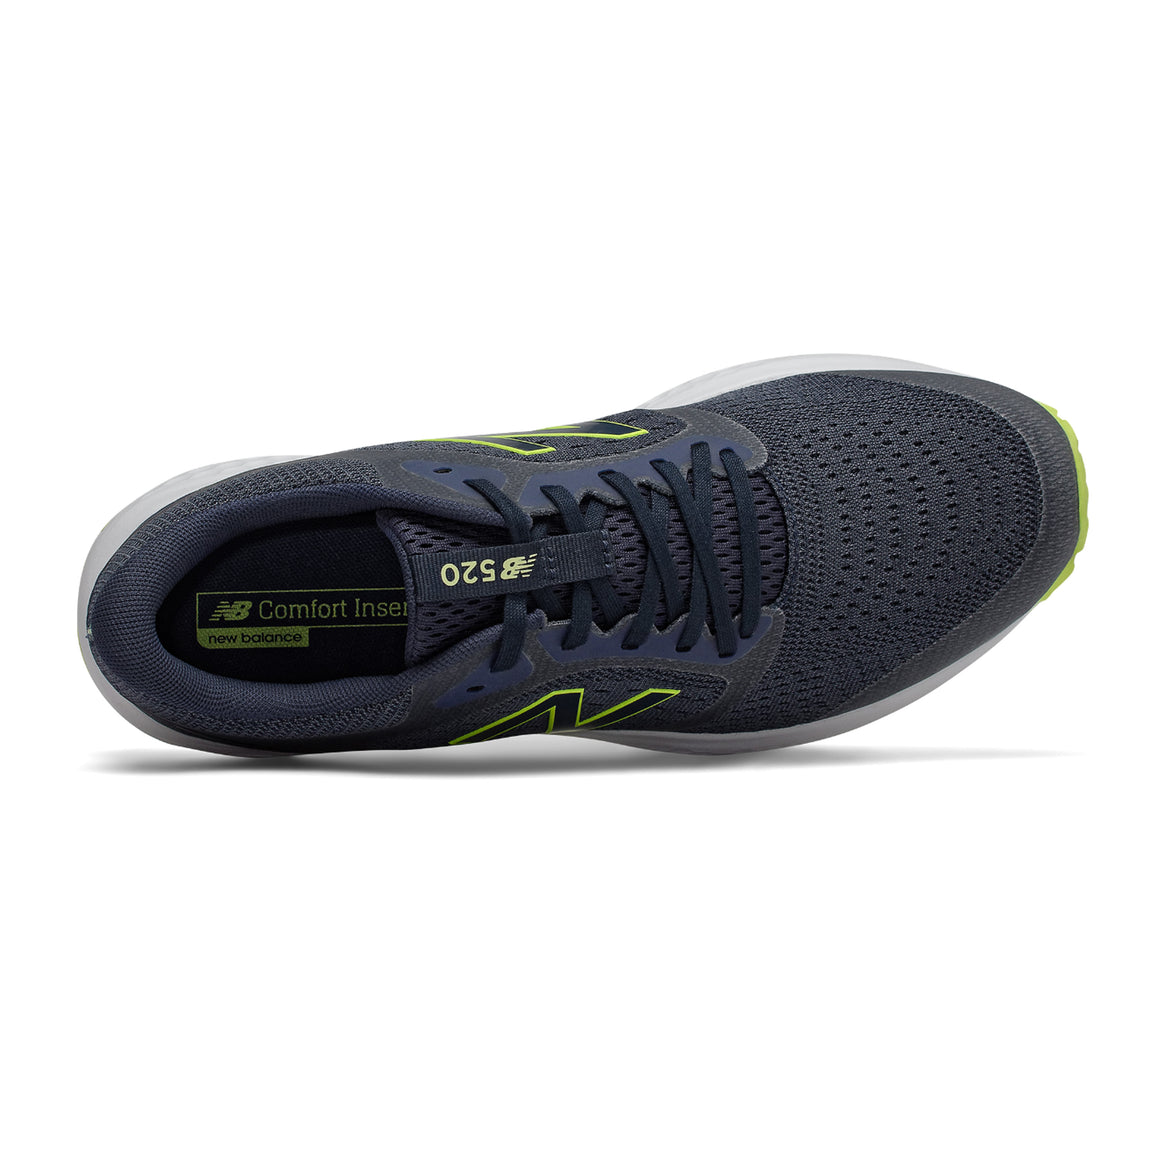 520 v5 Running Shoes for Men in Black and Green